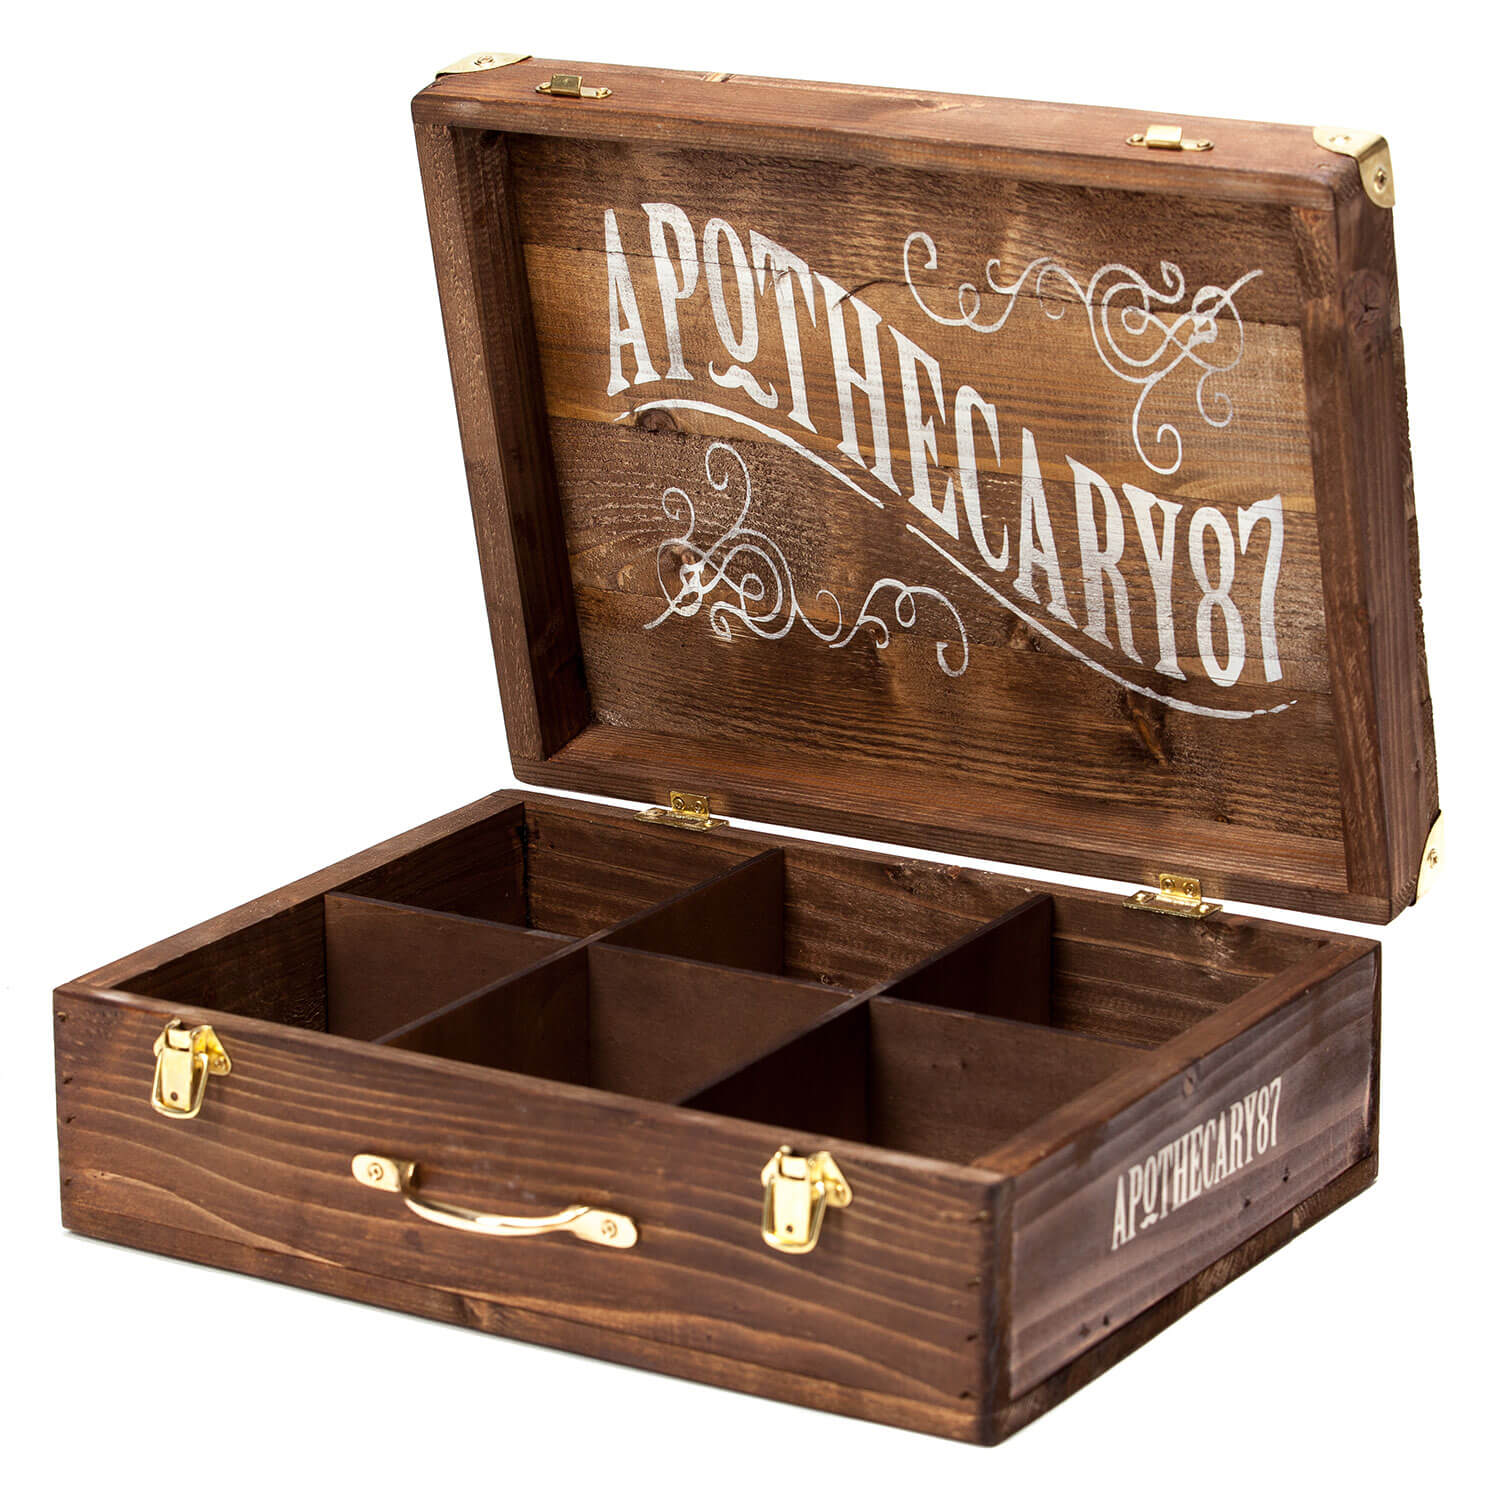 Apothecary87 Grooming - Wooden Briefcase Display